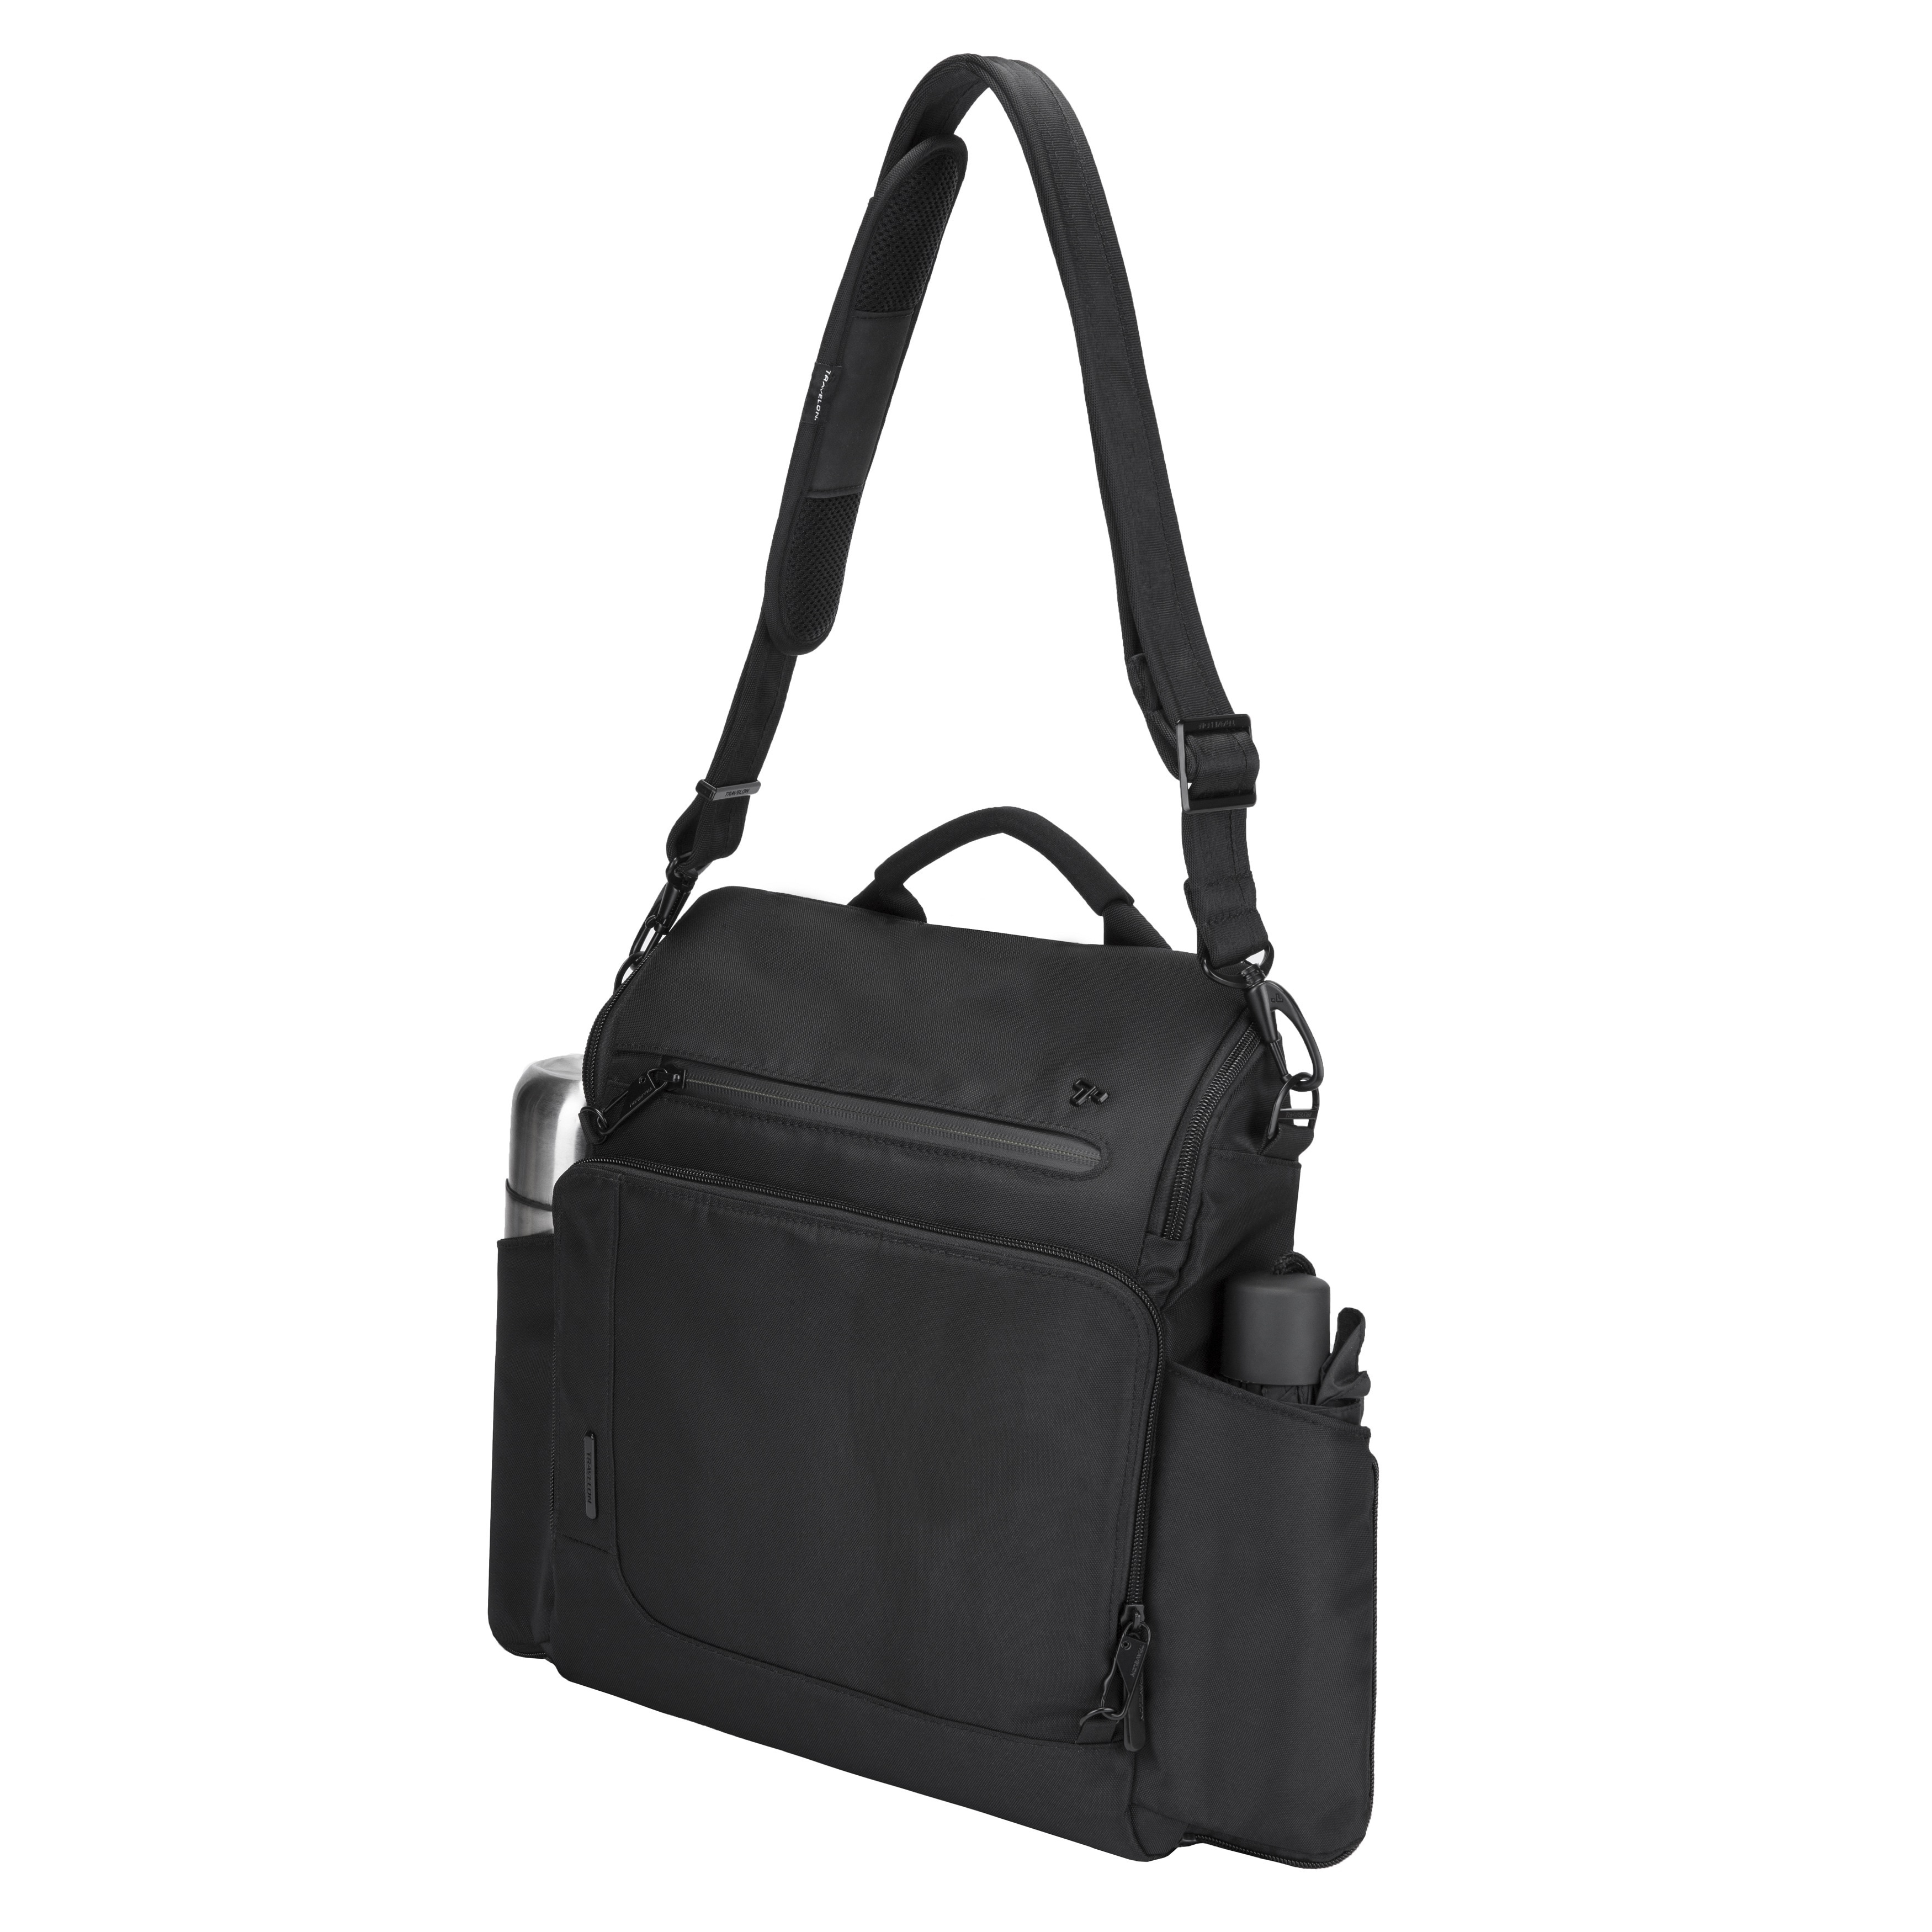 fc3a079c28 Shop Travelon Anti-Theft Urban® North South Tablet Messenger - Free  Shipping Today - Overstock - 15230257